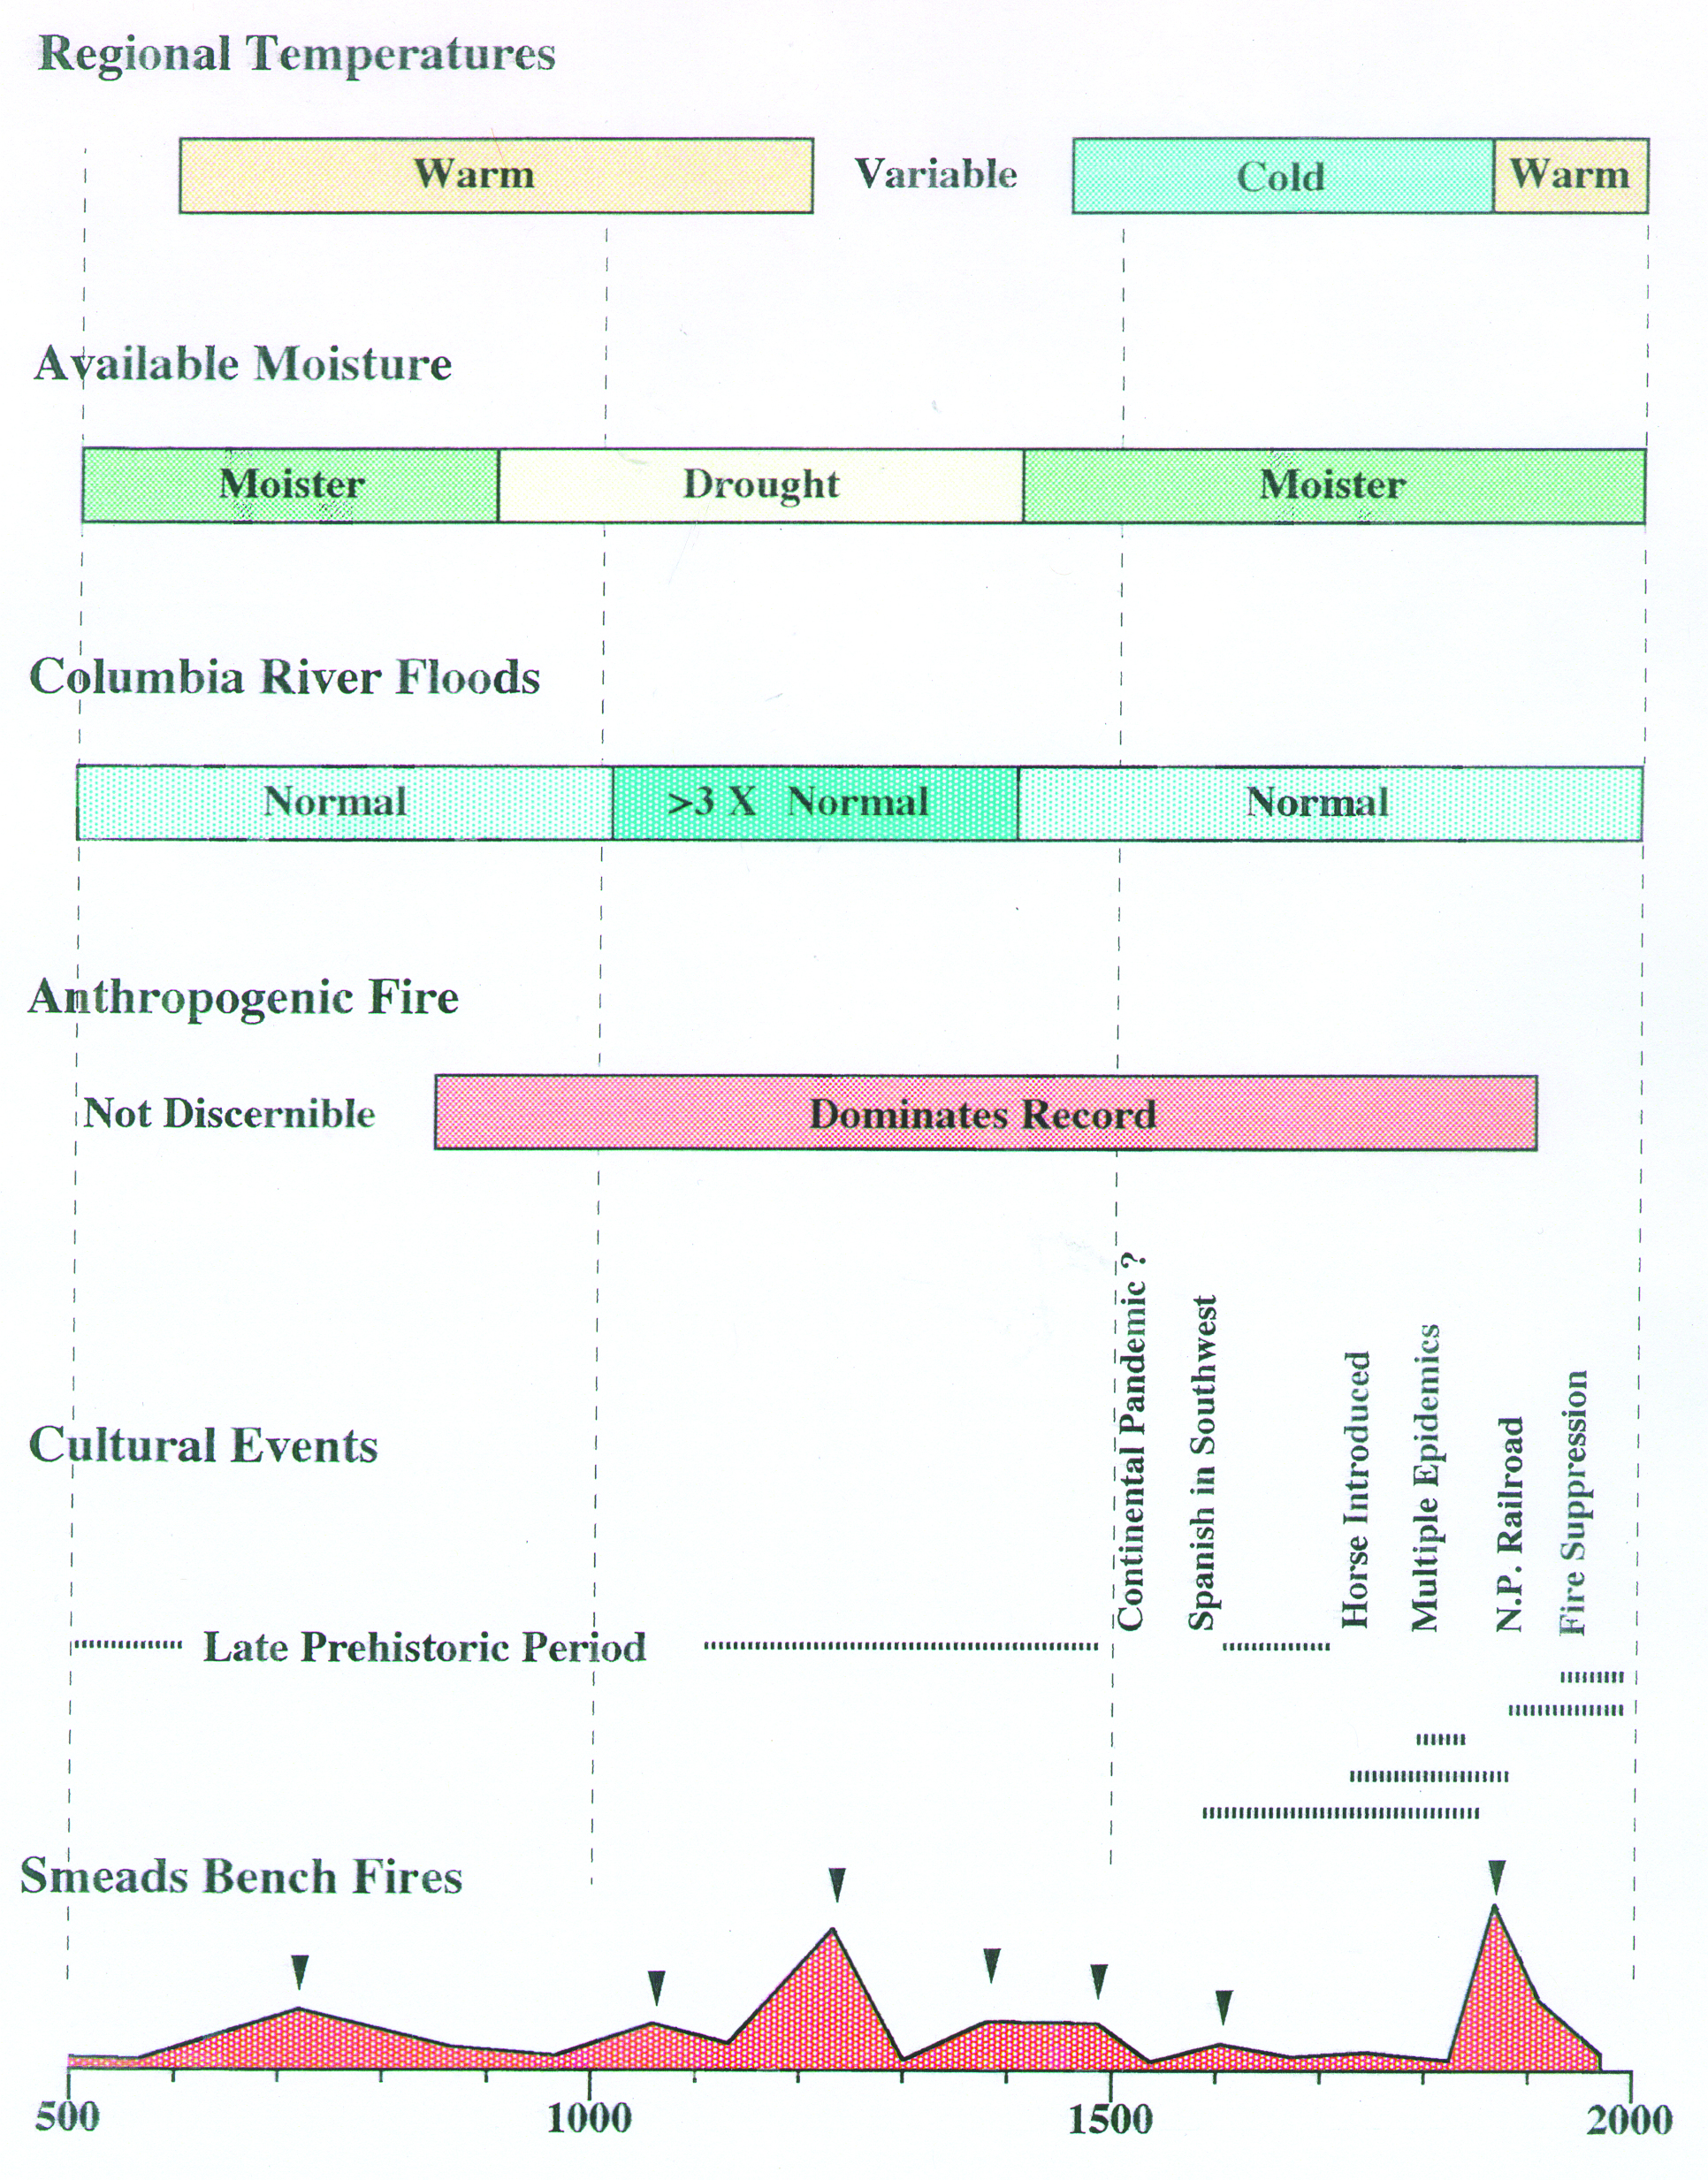 Figure 4. Graphic illustrates the relationship between temperatures, available moisture, Columbia River floods, and anthropogenic fire in the Kootenai National Forest.